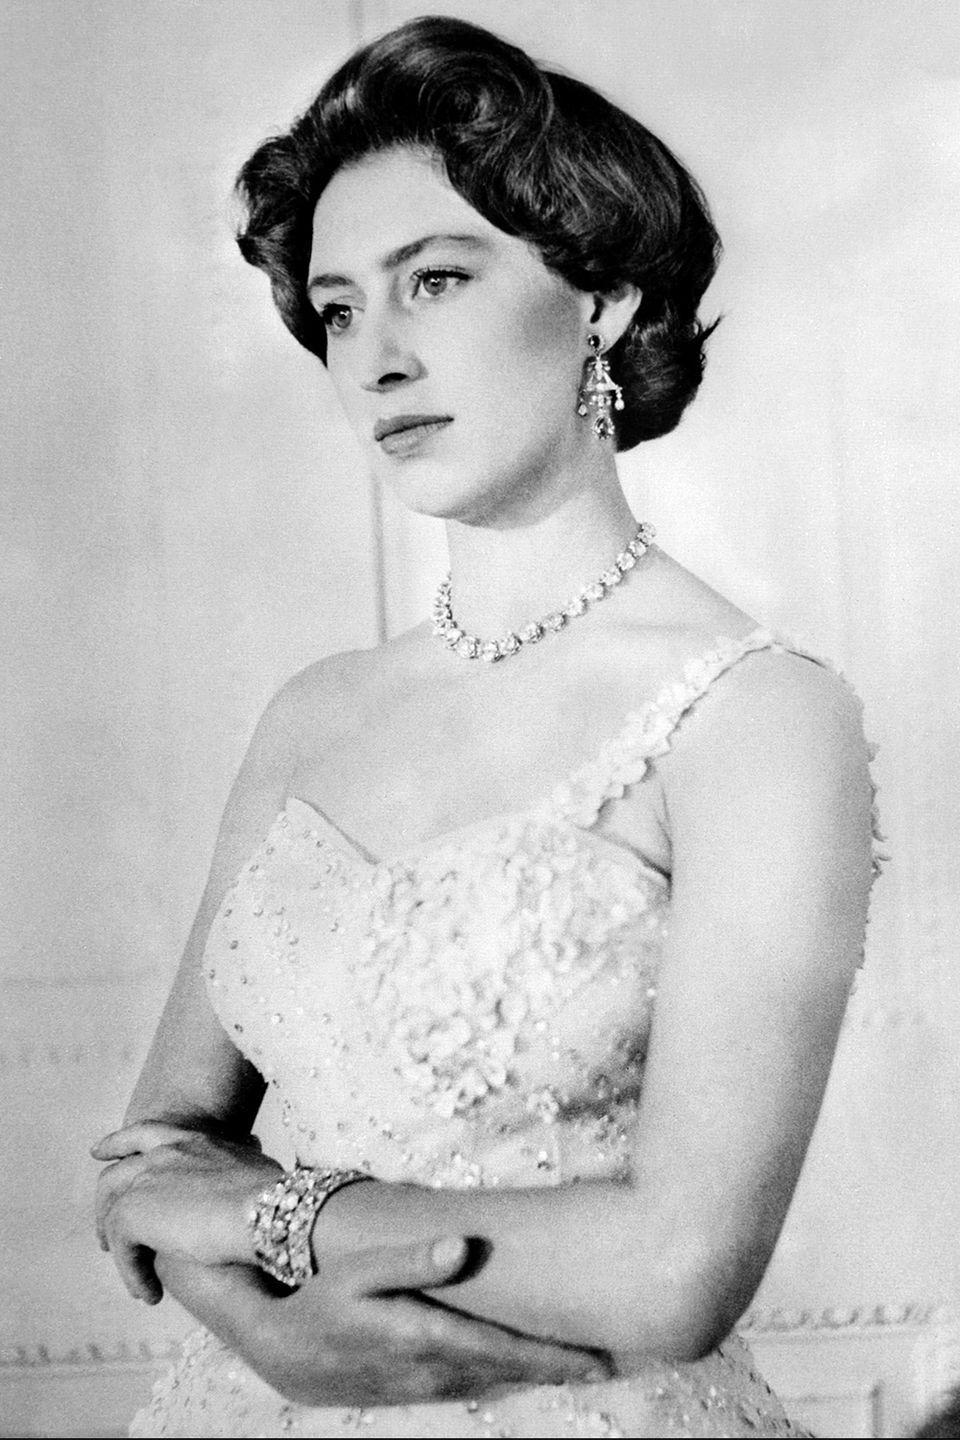 <p>A portrait of Princess Margaret, taken at her older sister, Queen Elizabeth's, birthday. It's like a photo booth, but more professional because, royalty. Her Majesty turned 30 years old in 1956.</p>